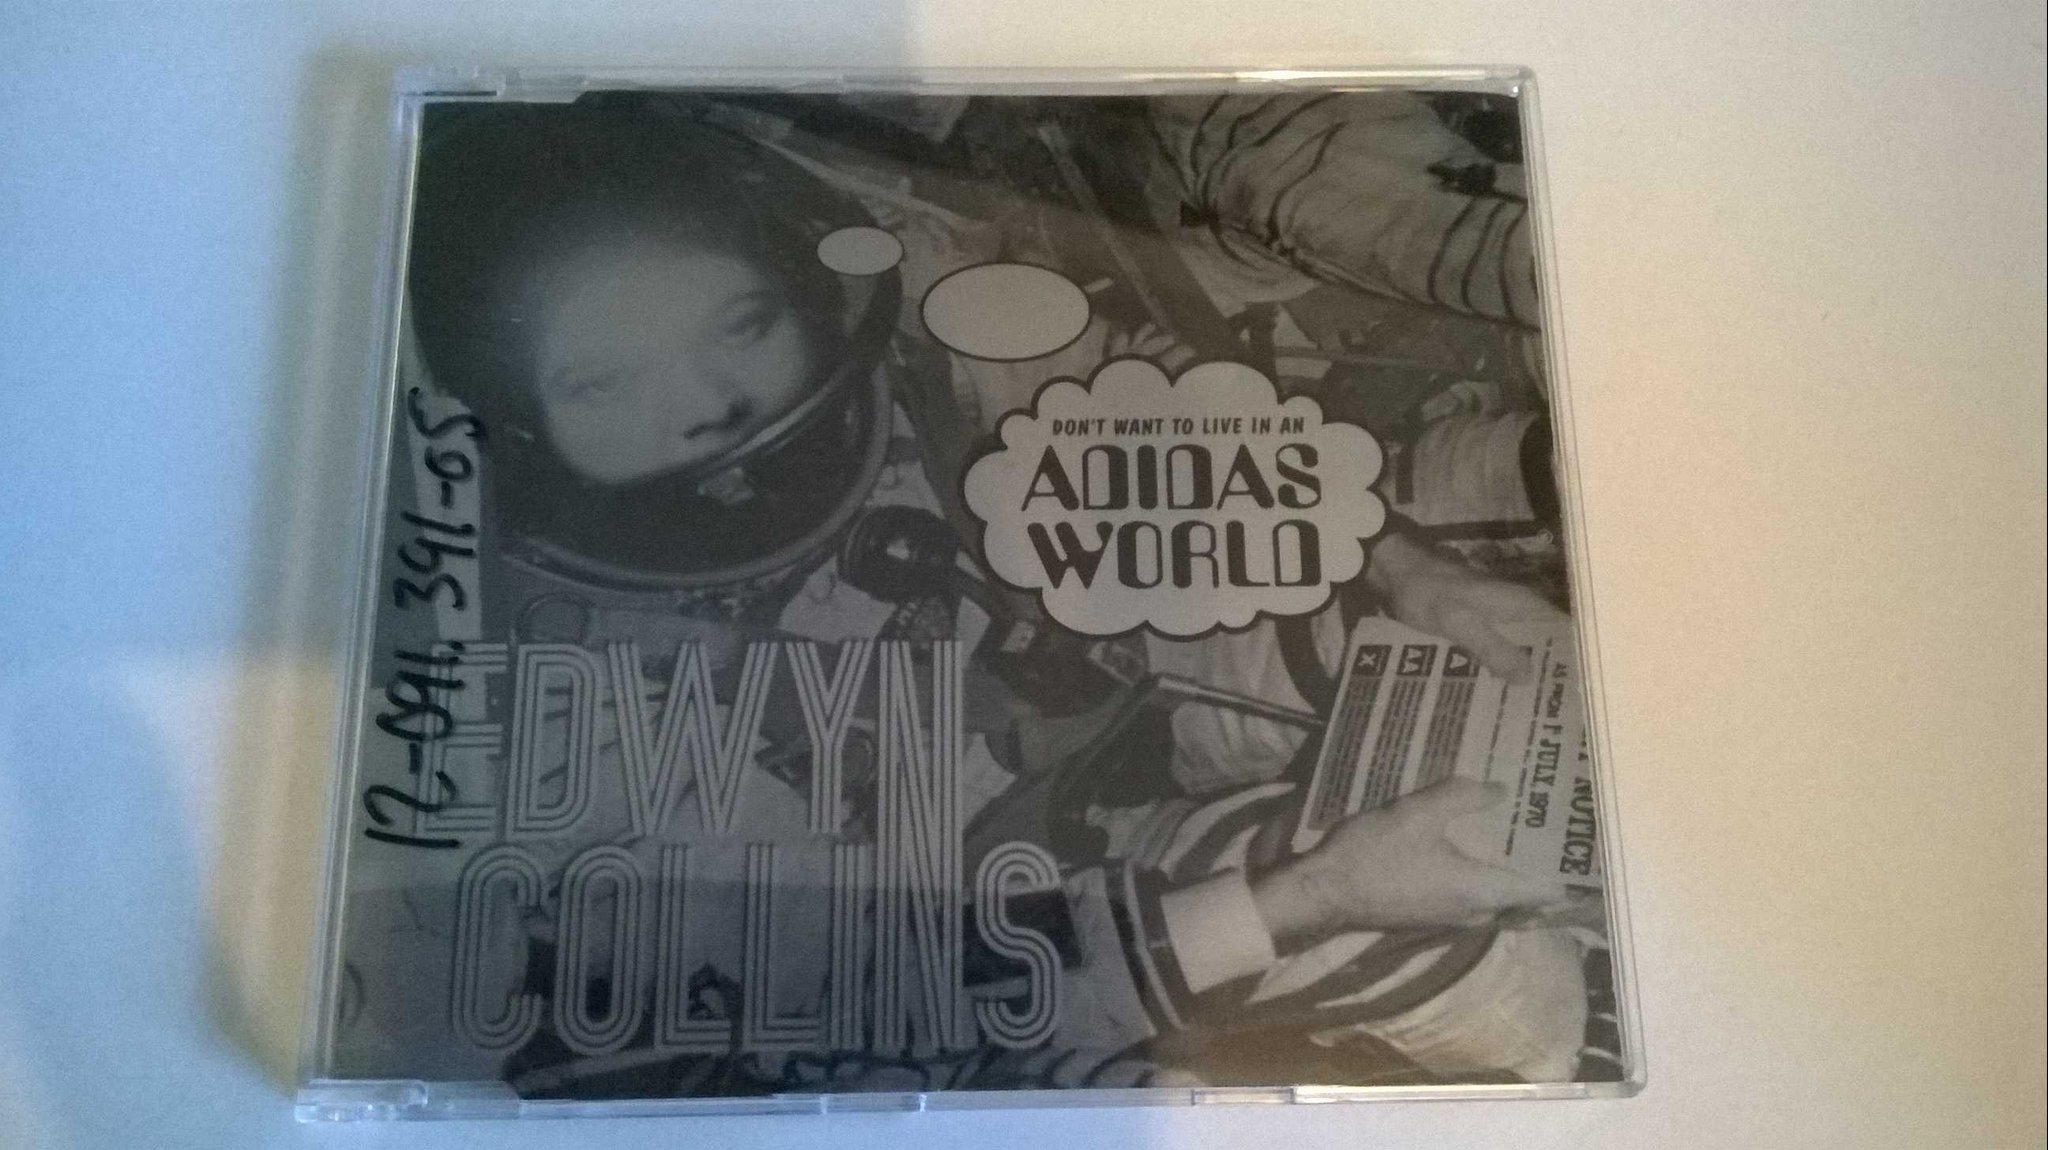 Edwyn Collins - Don't Want to Live in an Adidas World, Promo